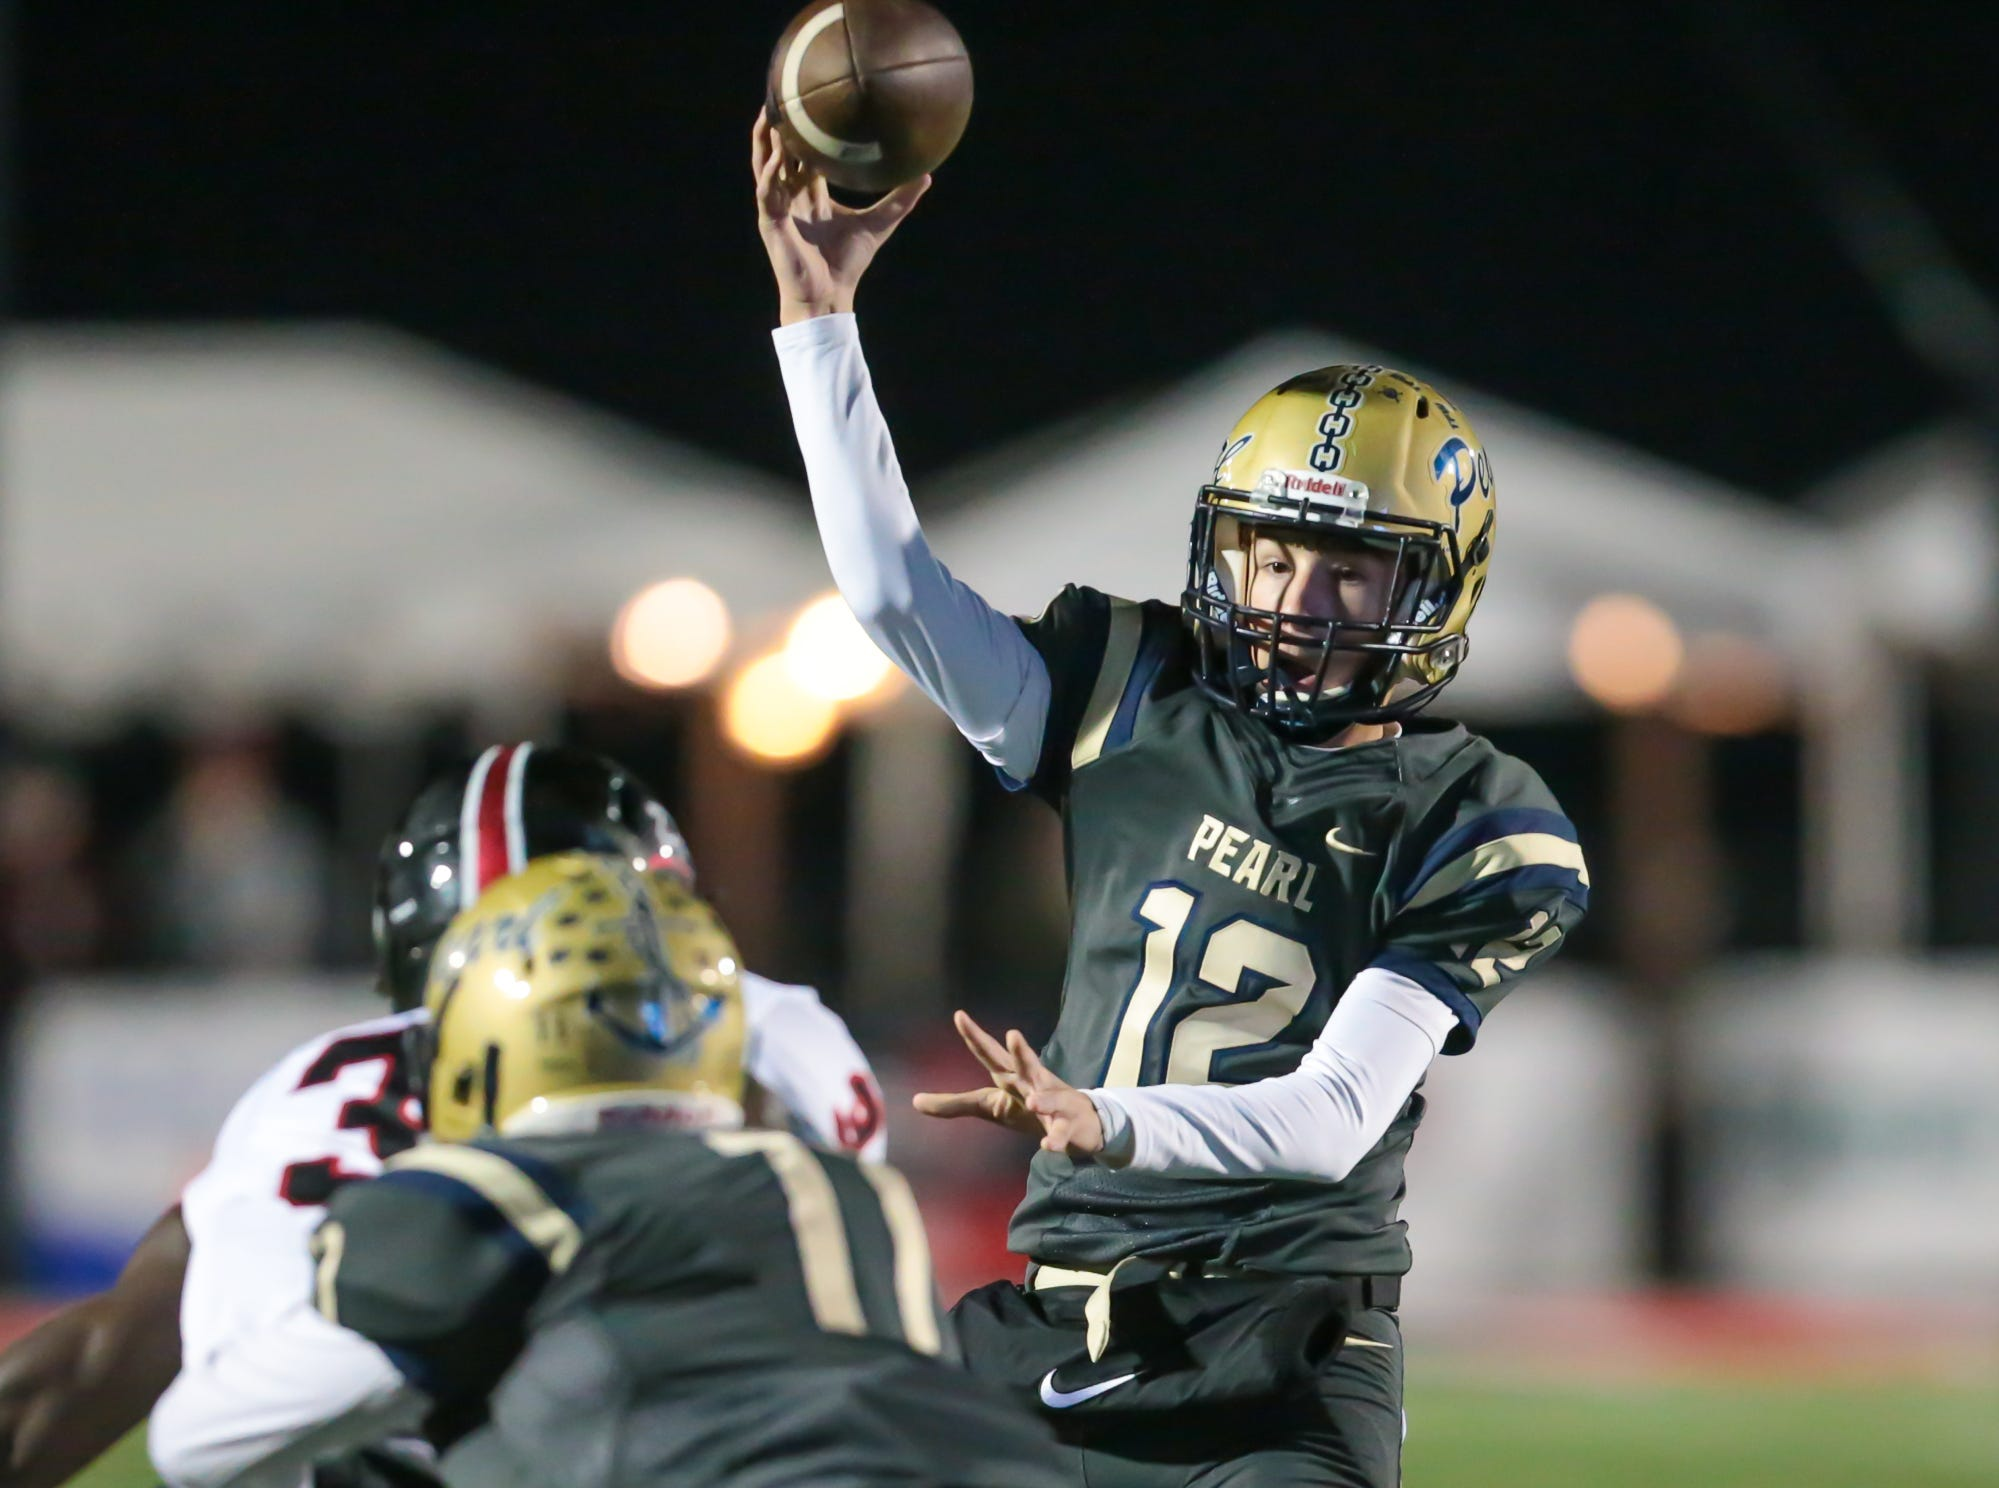 Pearl High School's Shade Foster (12) releases a pass in the first half. Pearl played Brandon High School in an MHSAA Class 6A playoff game on Friday, November 16, 2018 at Brandon. Photo by Keith Warren